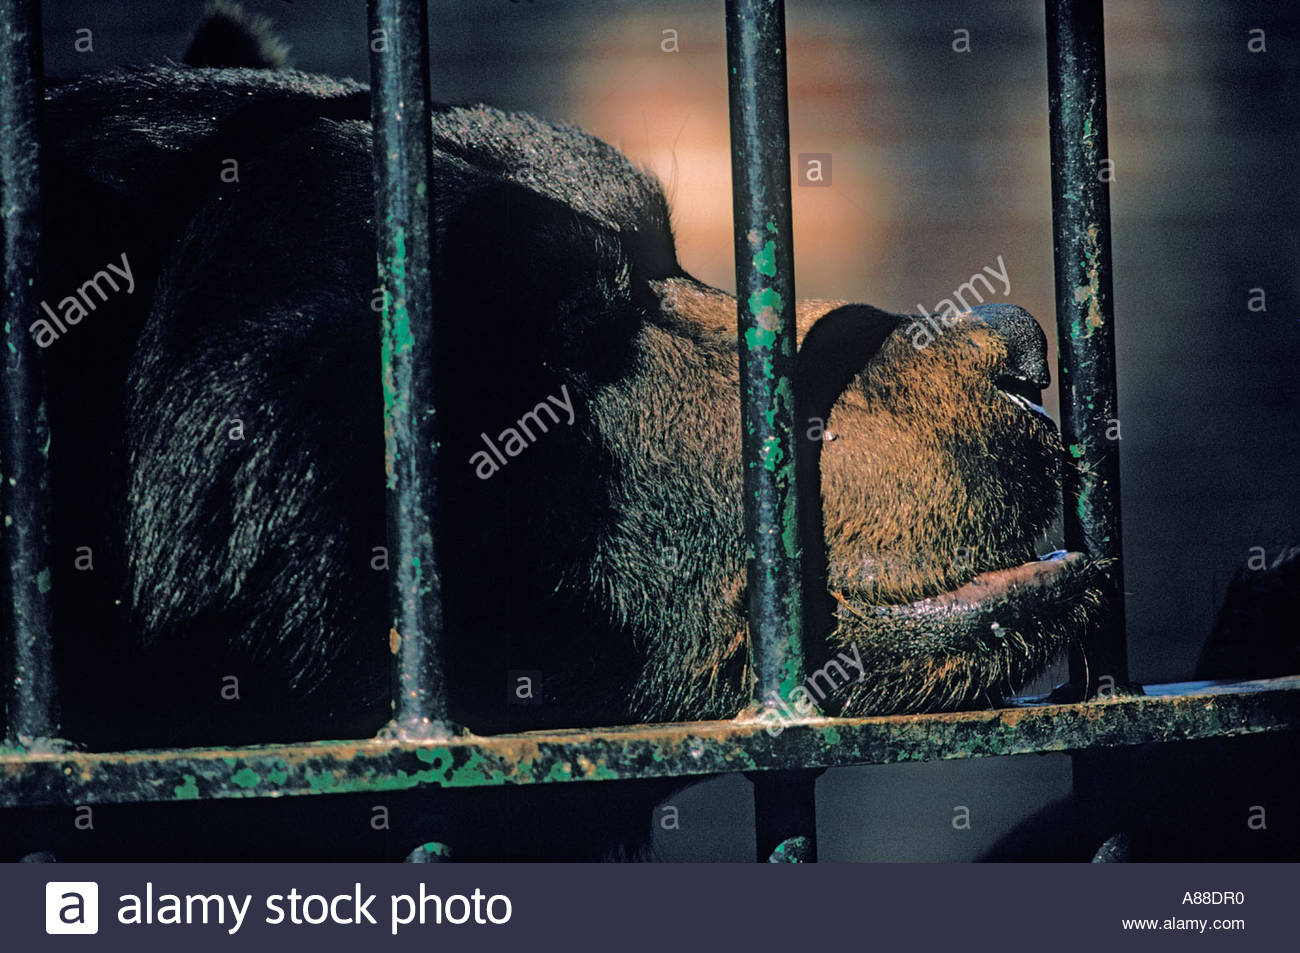 grizzly-bear-in-a-cage-in-an-old-fashion